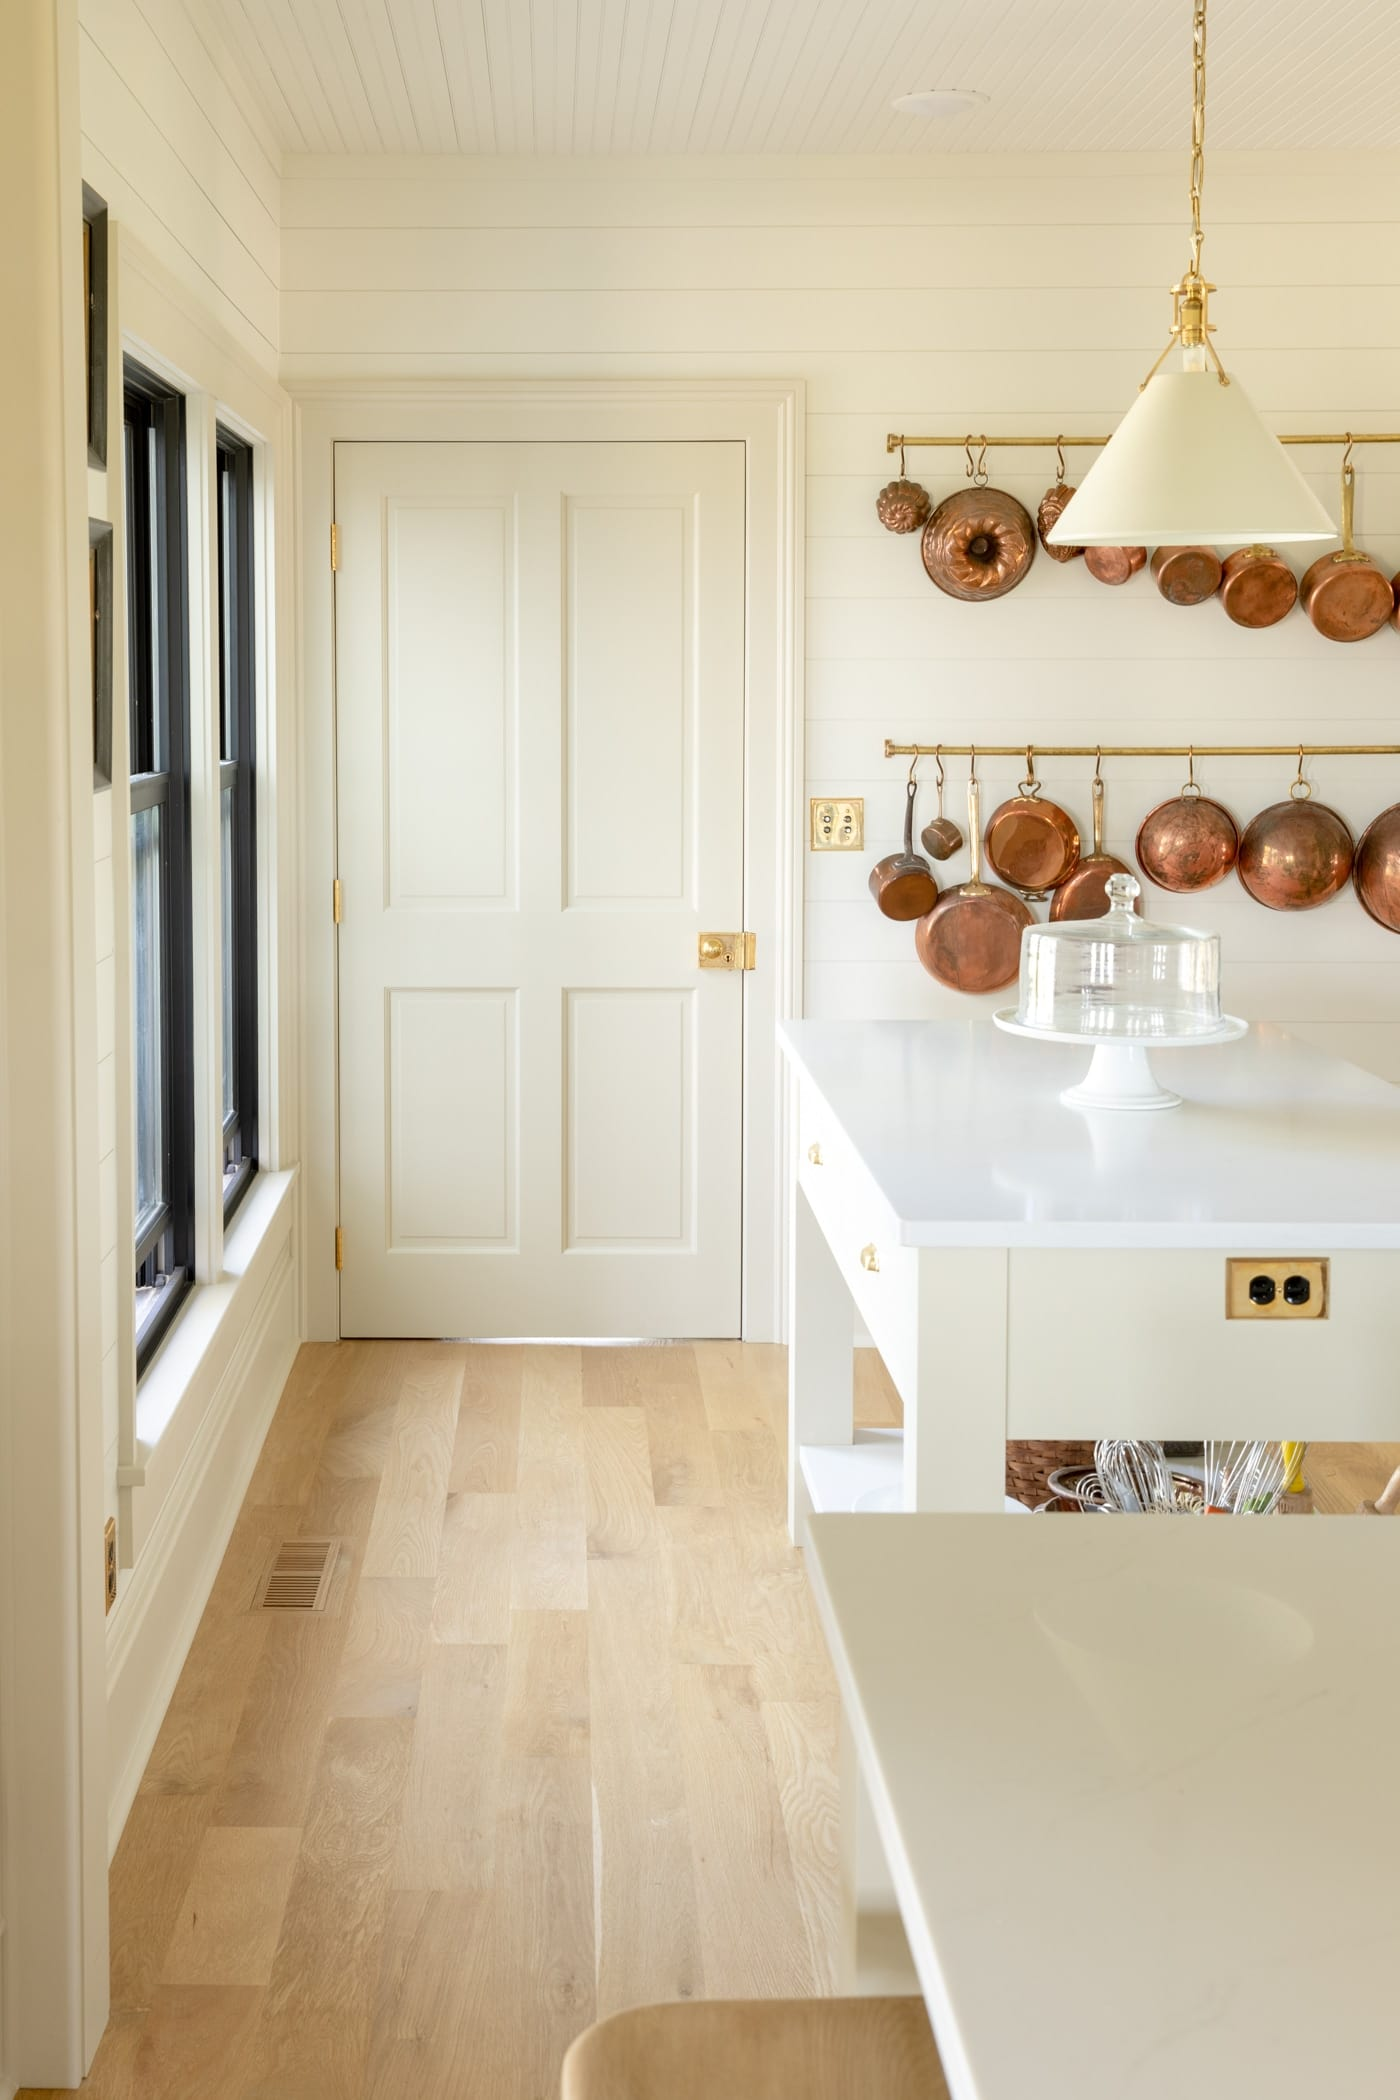 Four square creamy colored panel door with light oak floors leading up to it with small island to the side